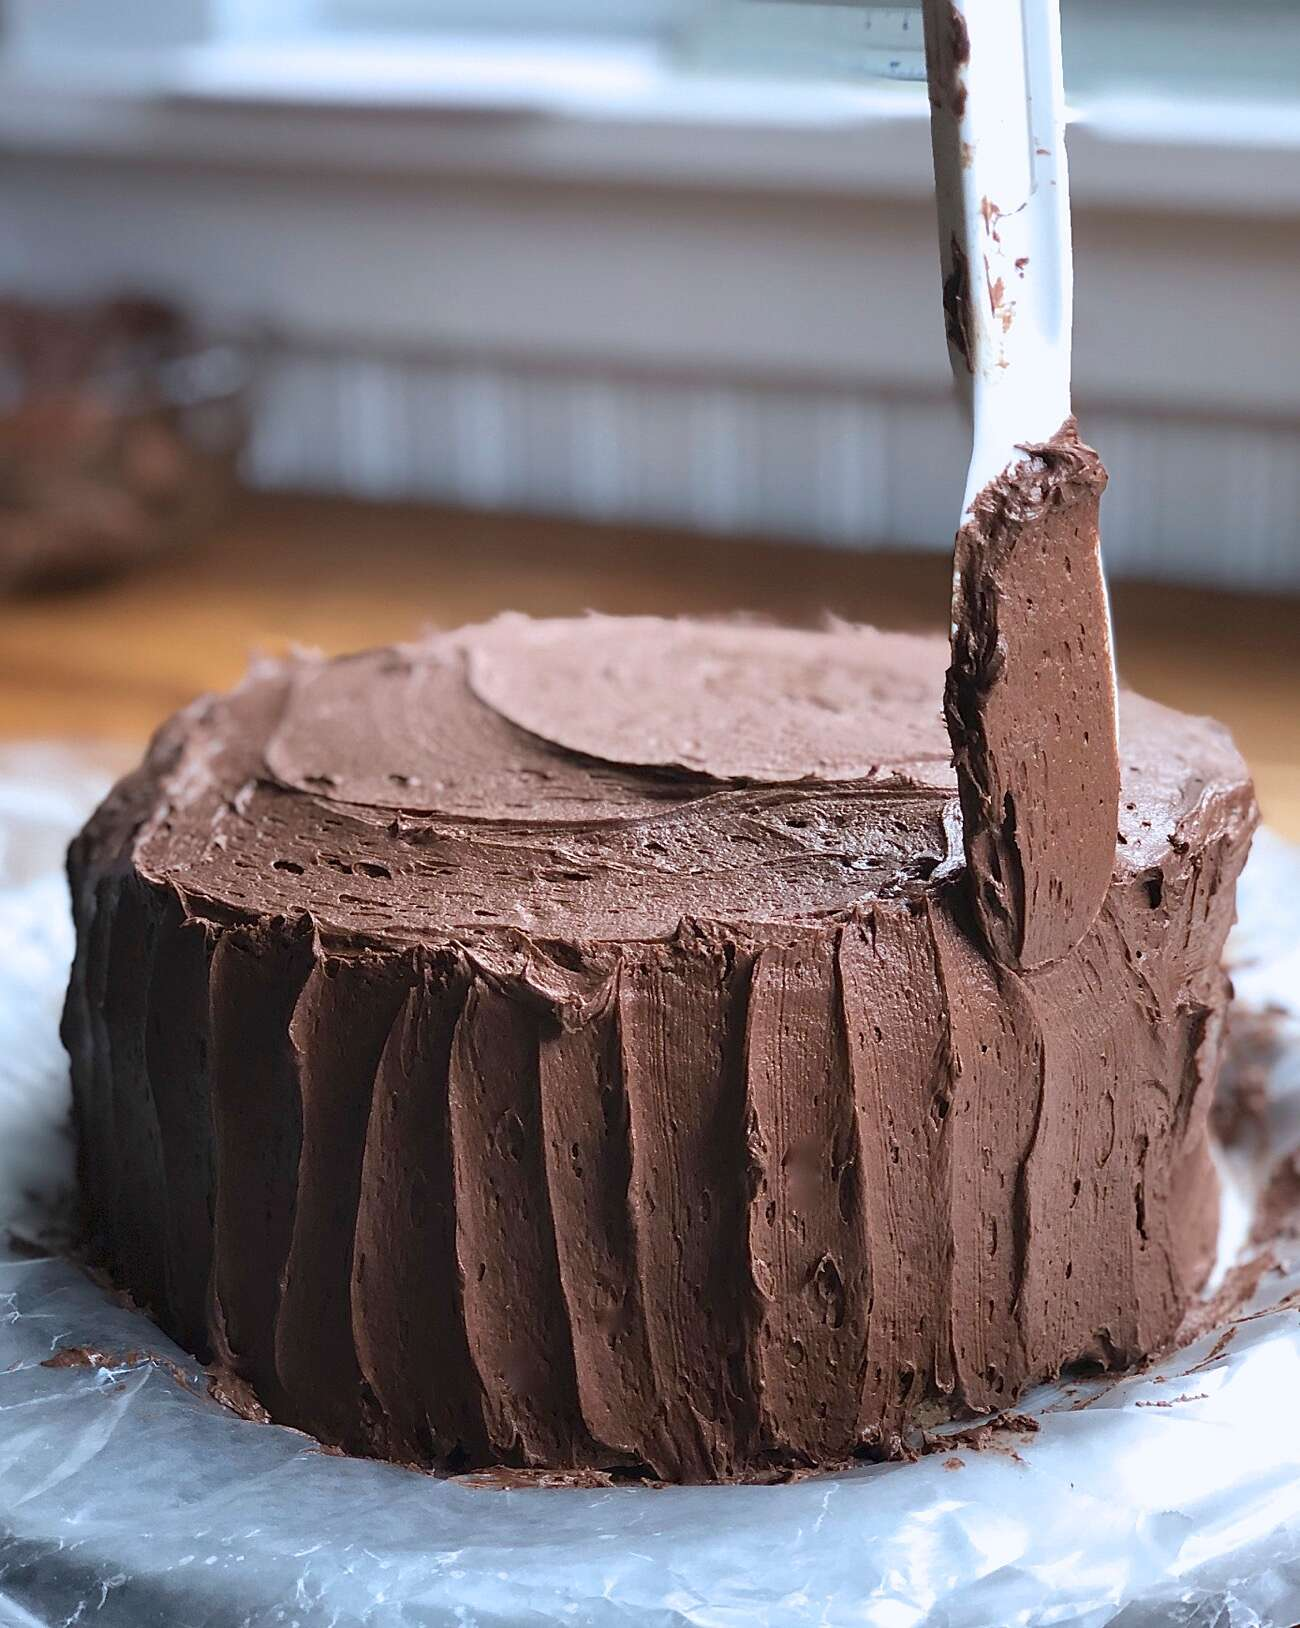 Using a nylon spatula to make vertical scallops in a chocolate-frosted double-layer yellow cake.